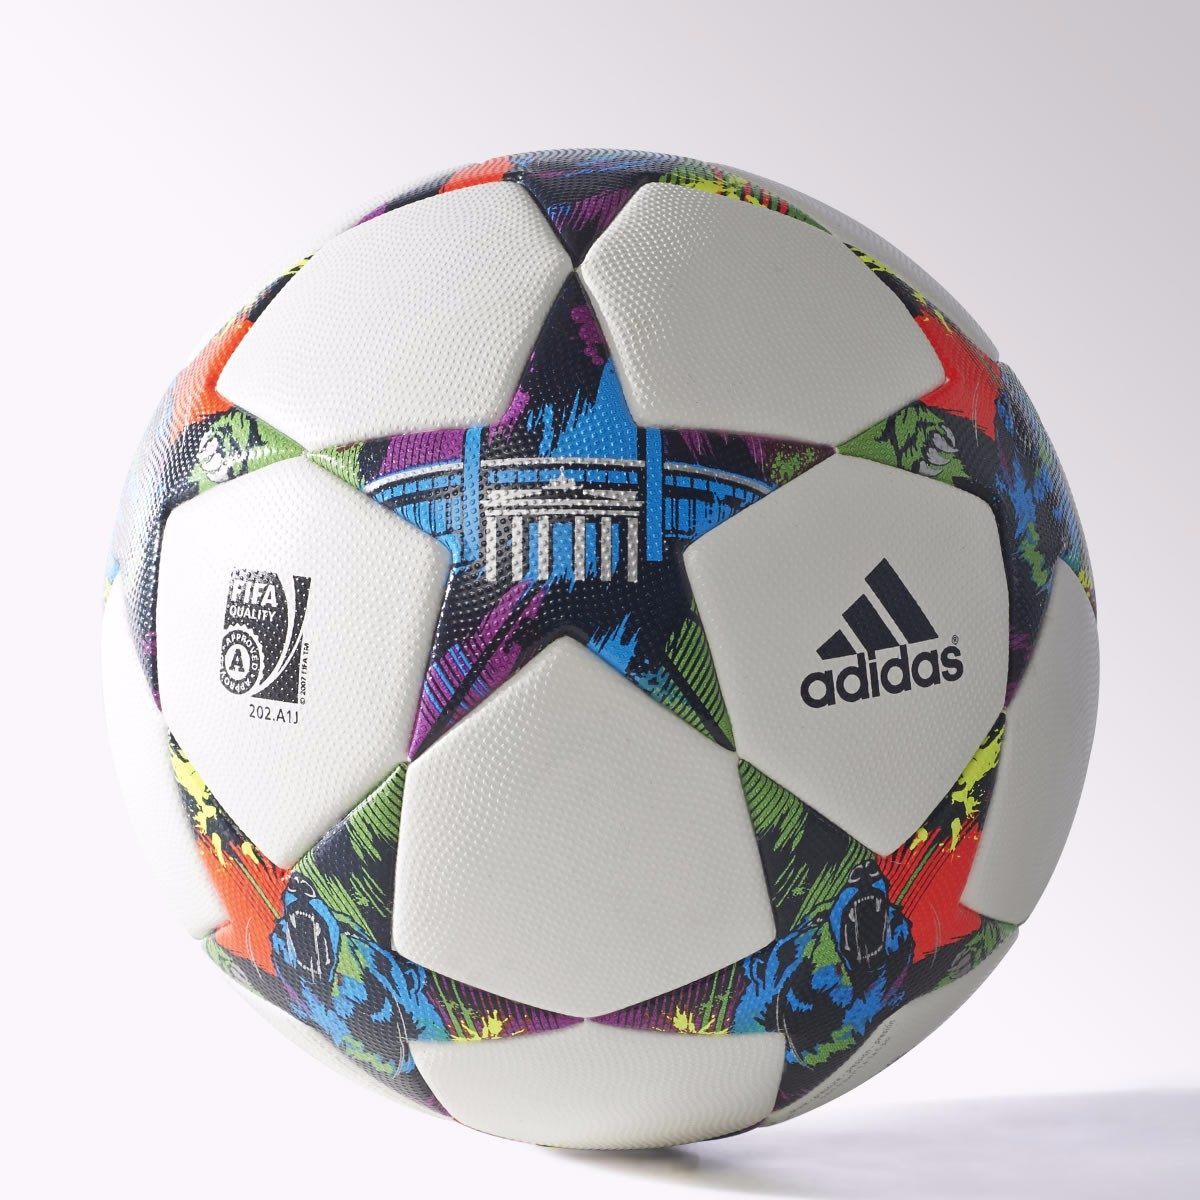 c9533152fe884 Pelota Champions League Final 2015 Berlin adidas Nueva!!! -   3.200 ...